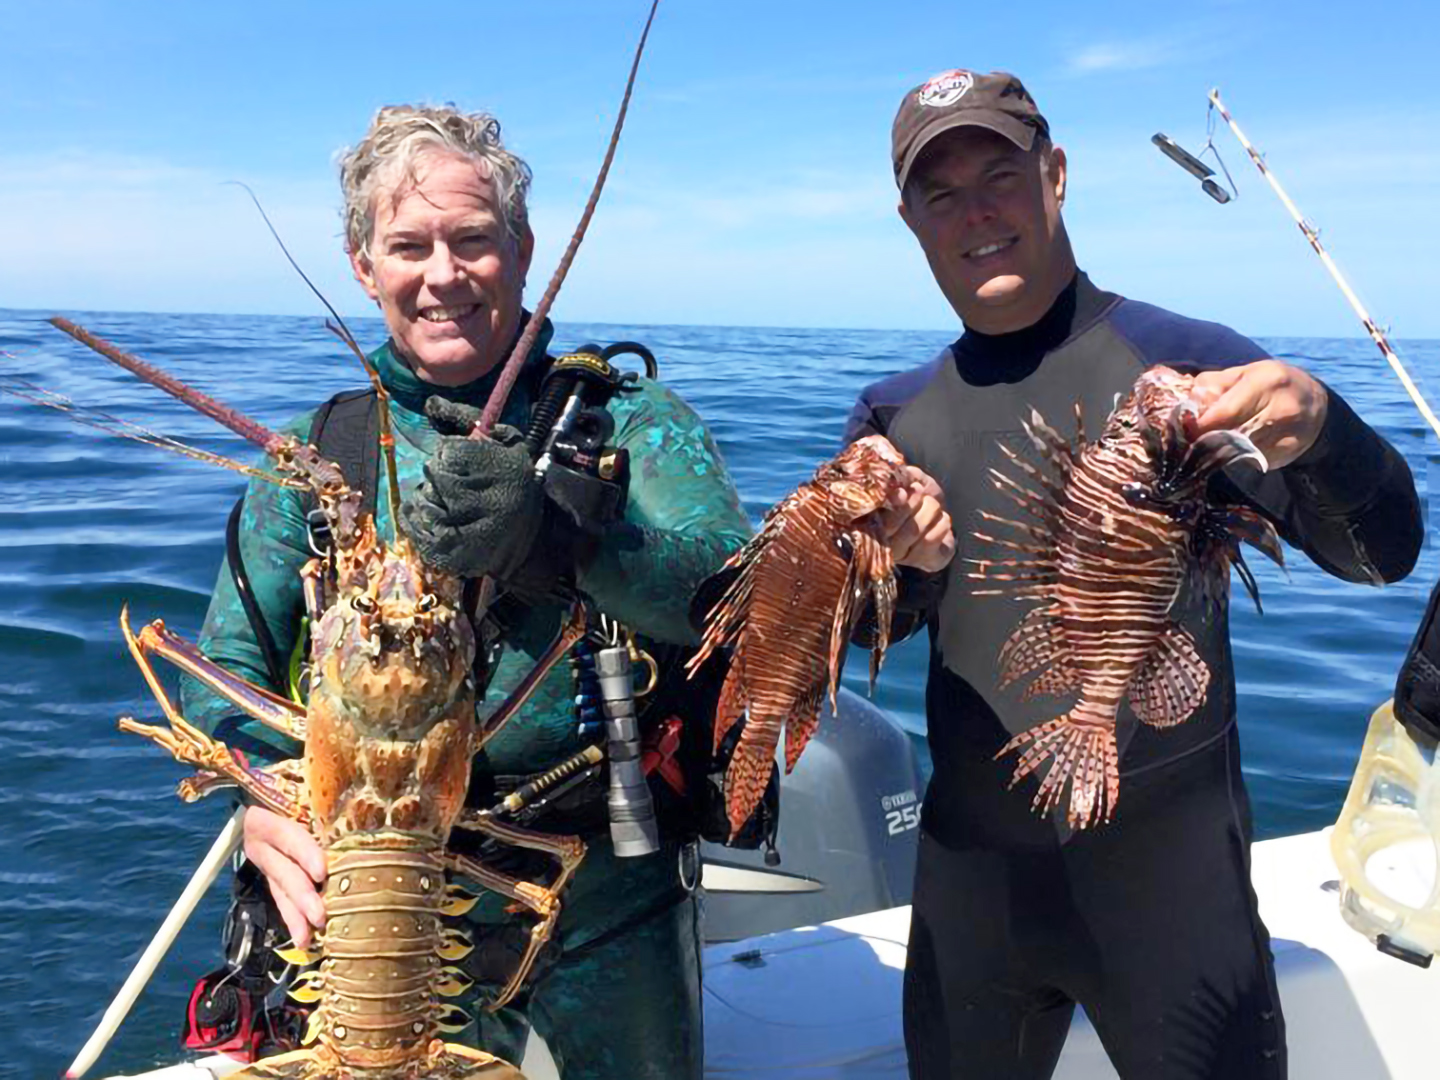 An image of two men holding their catch after spearfishing inclifing a Lobster and Lionfish